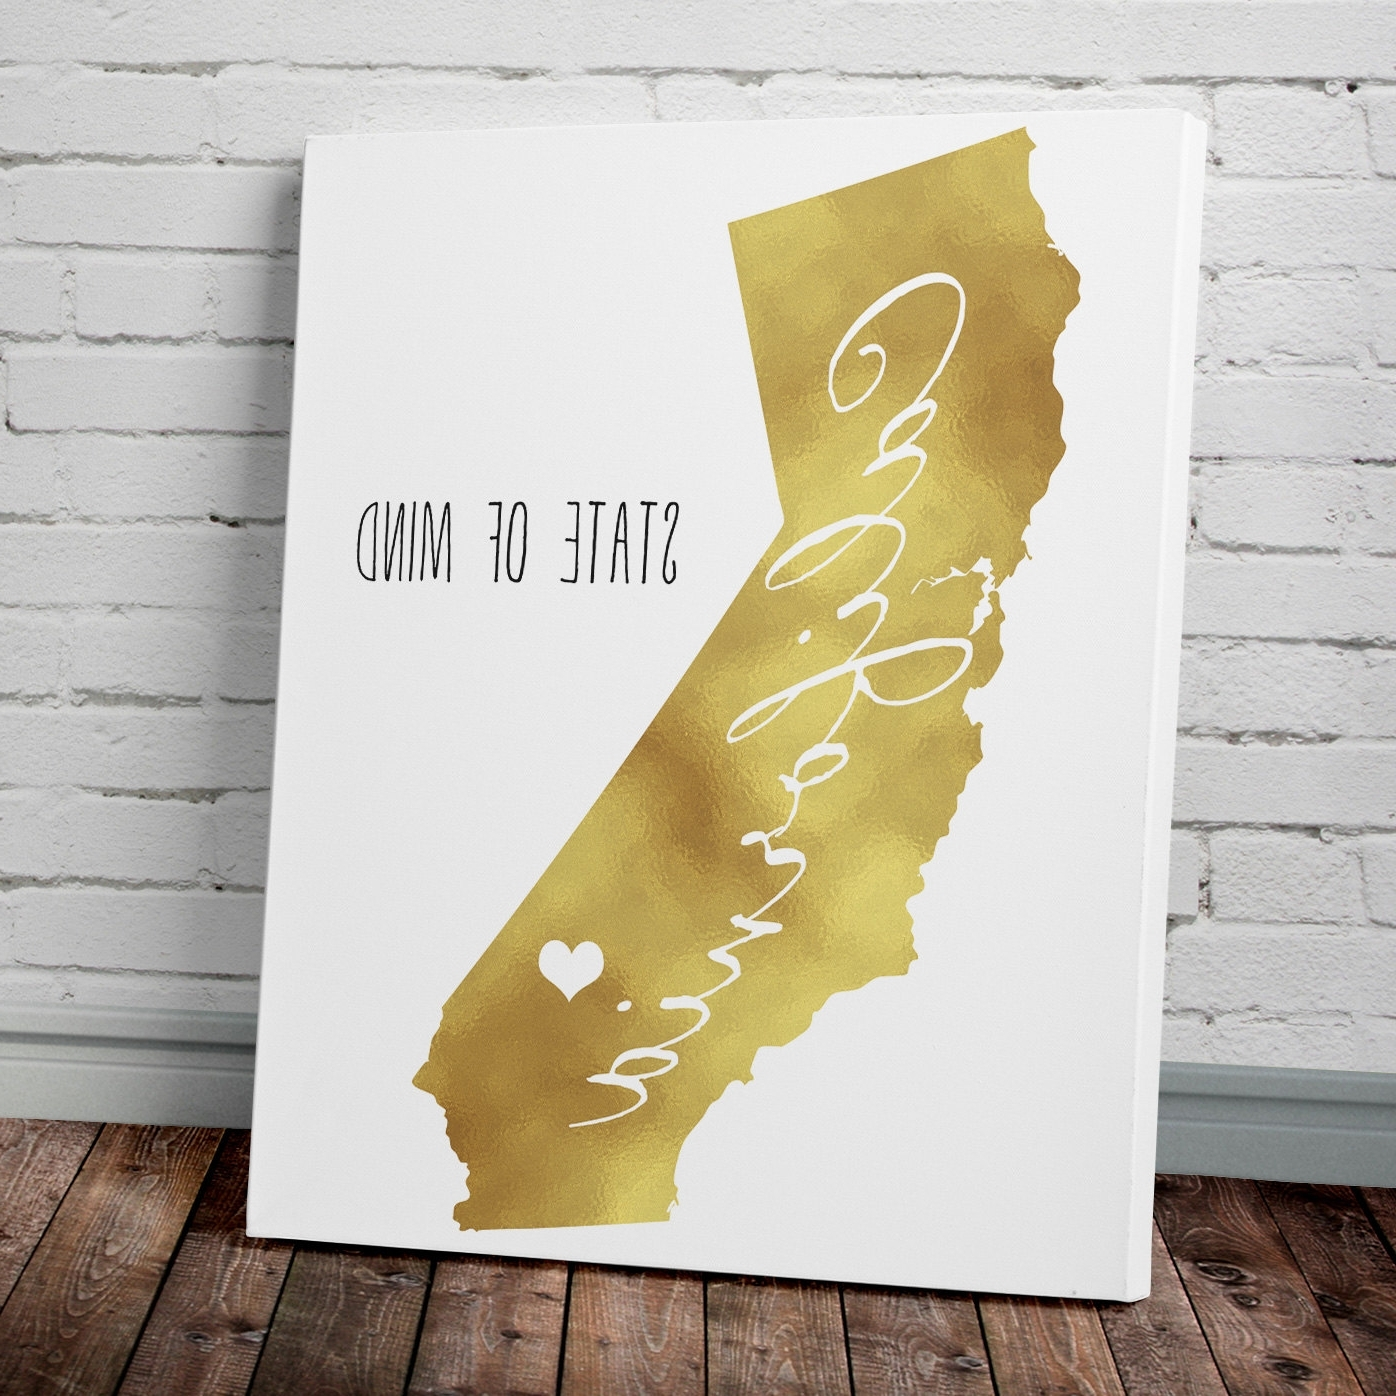 Most Recent Gold Foil Wall Art – Fallow With Regard To Gold Foil Wall Art (View 7 of 15)